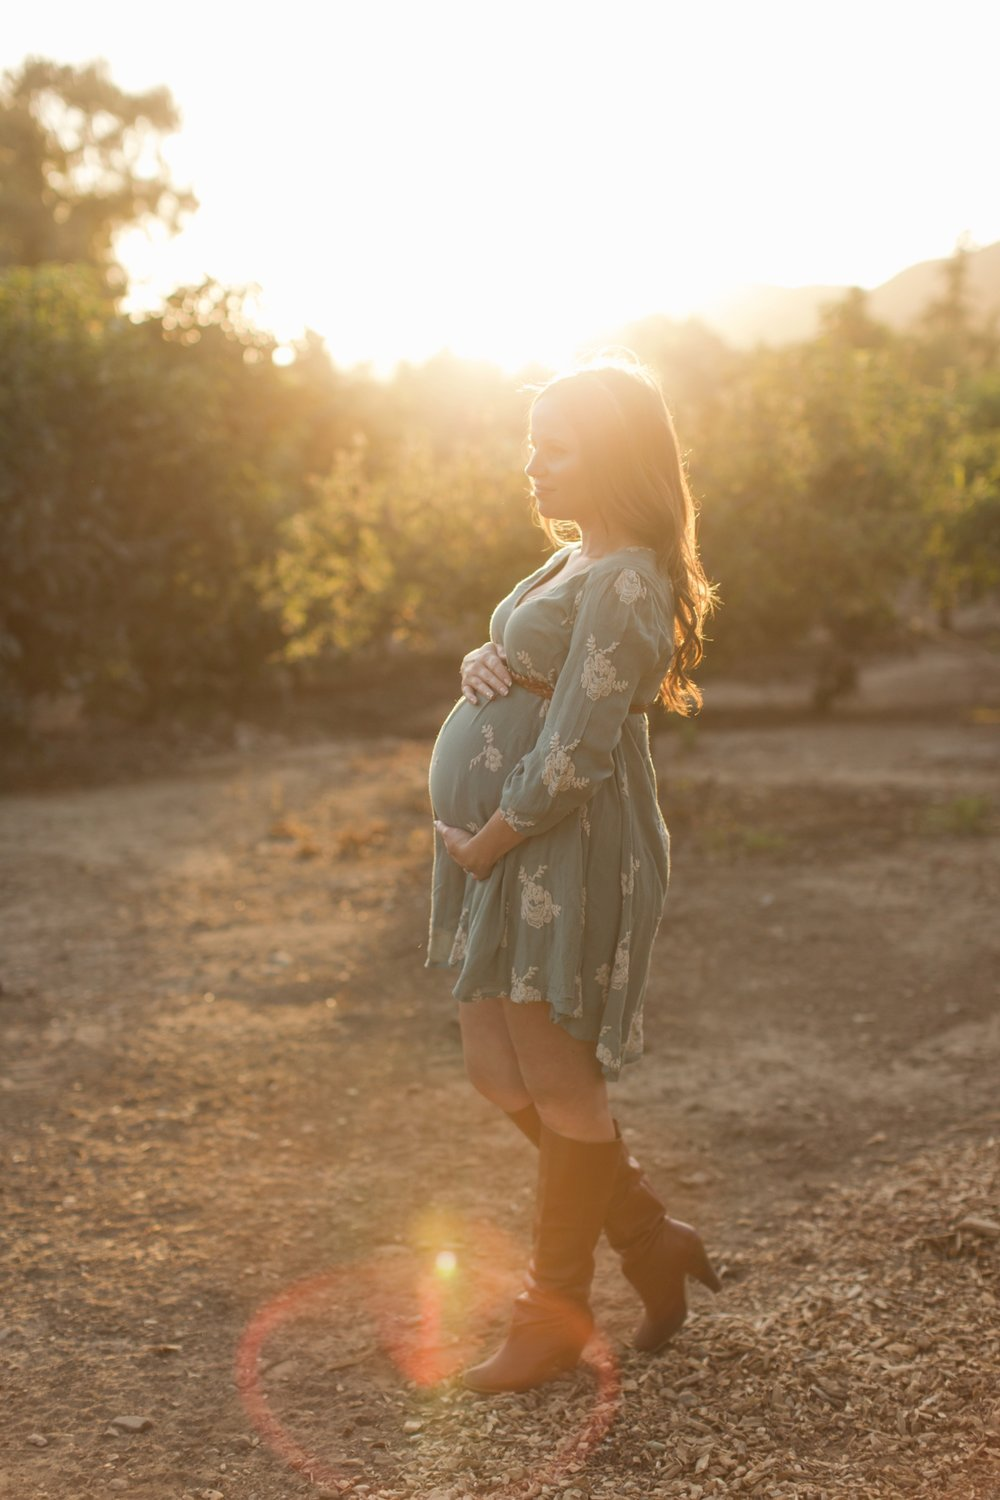 shewanders.photography.san_.diego_.maternity.coronado048.jpg.san_.diego_.maternity.coronado048.jpg